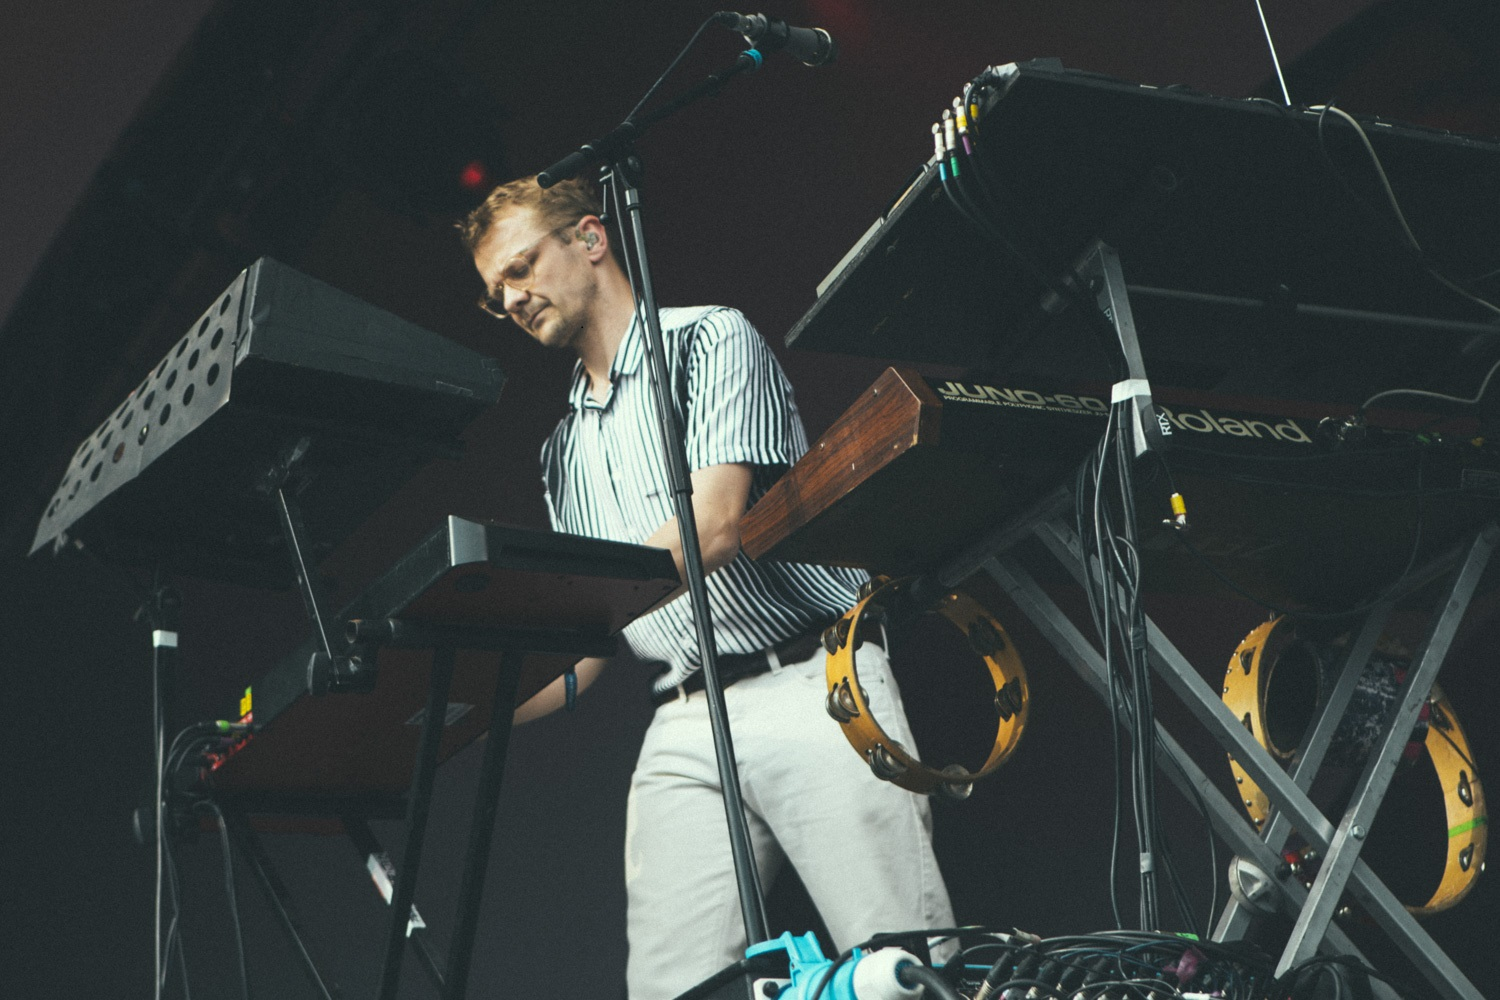 Django Django (Credit: Rory James)